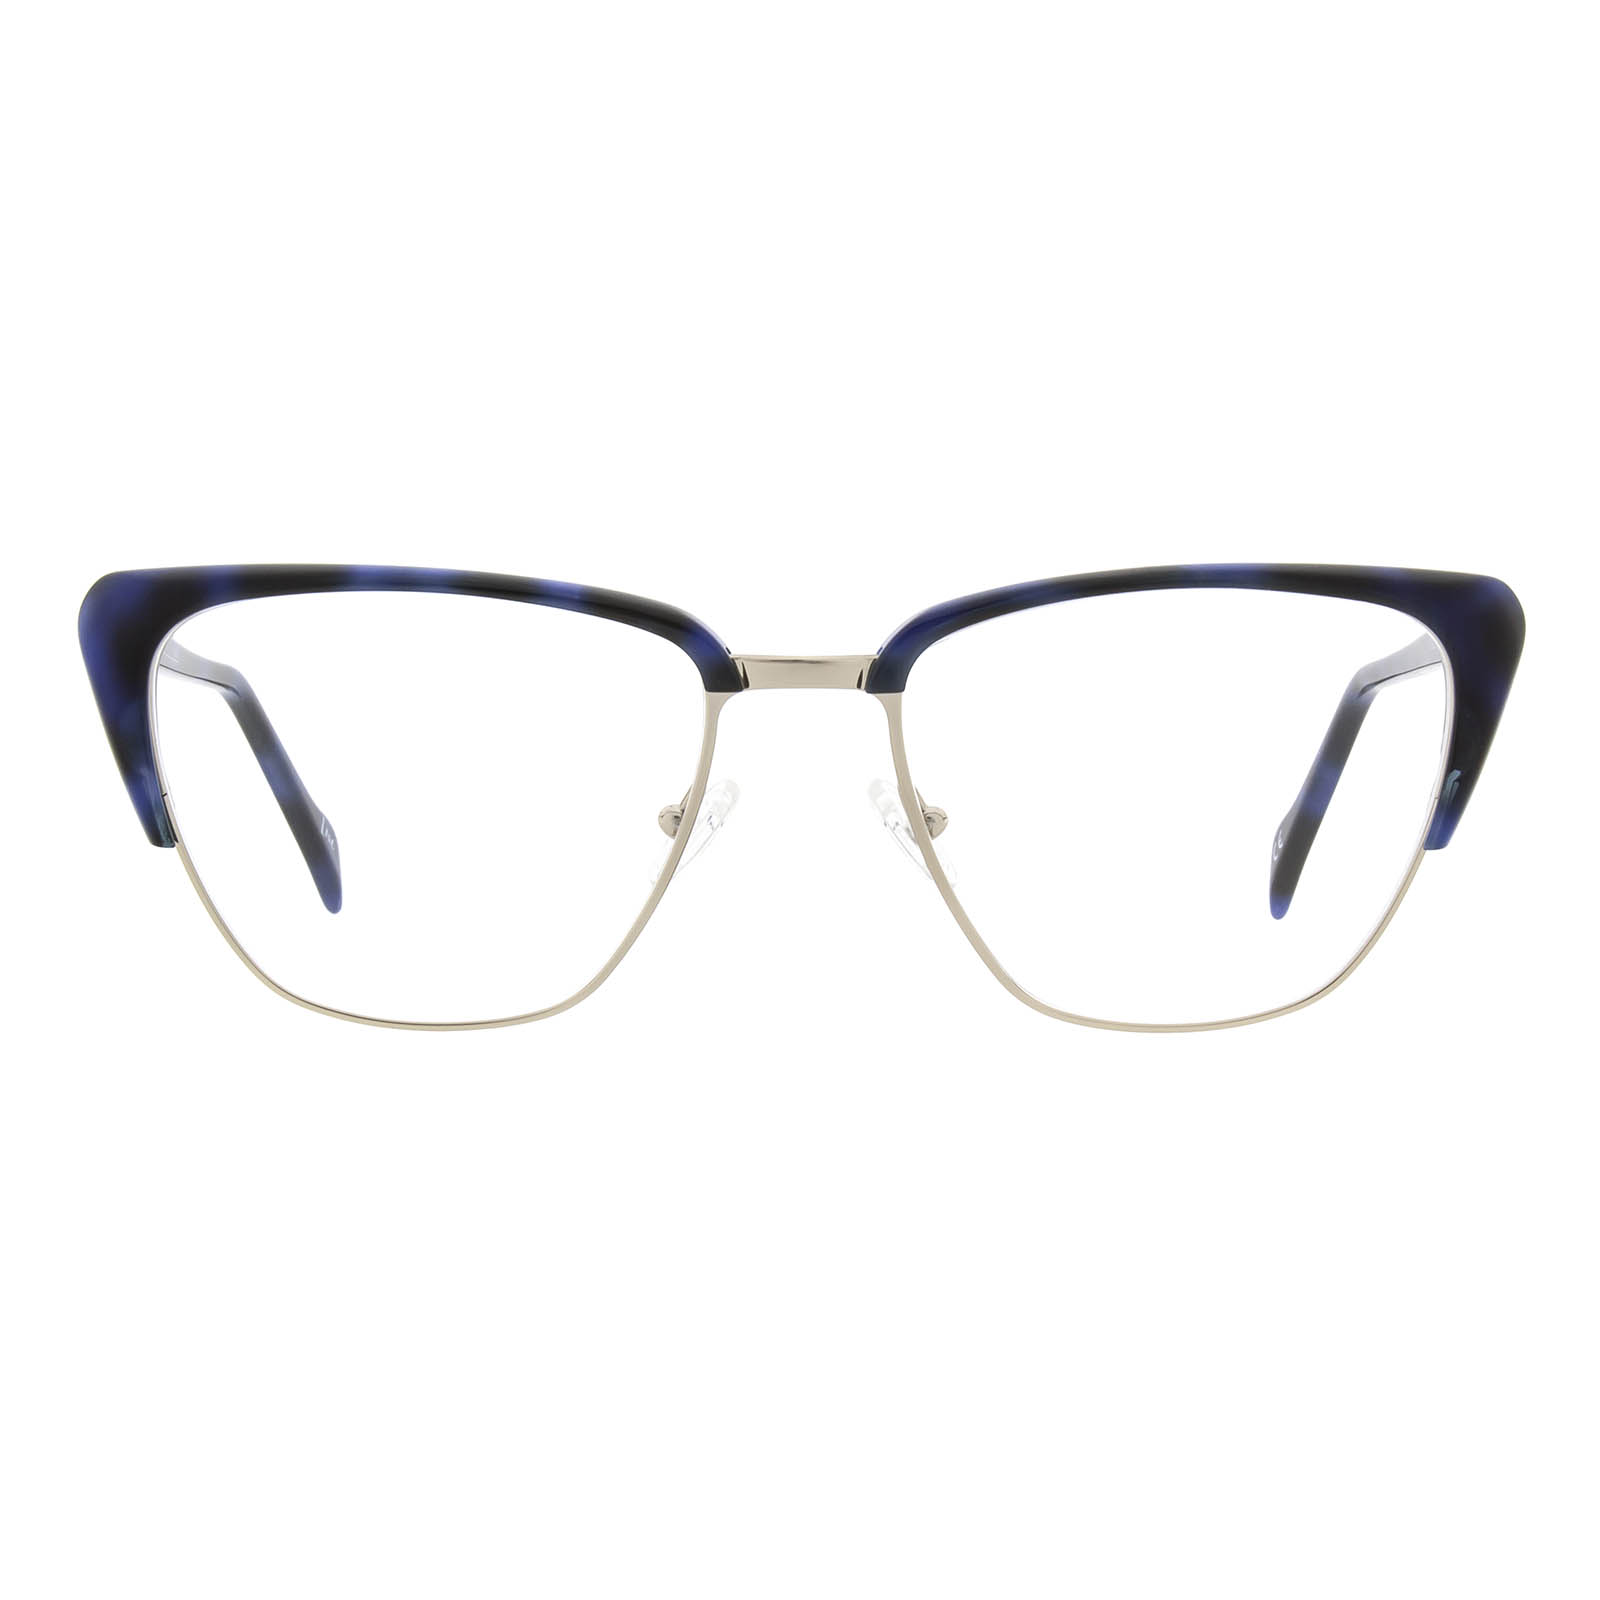 ANDY WOLF EYEWEAR_5102_C_front